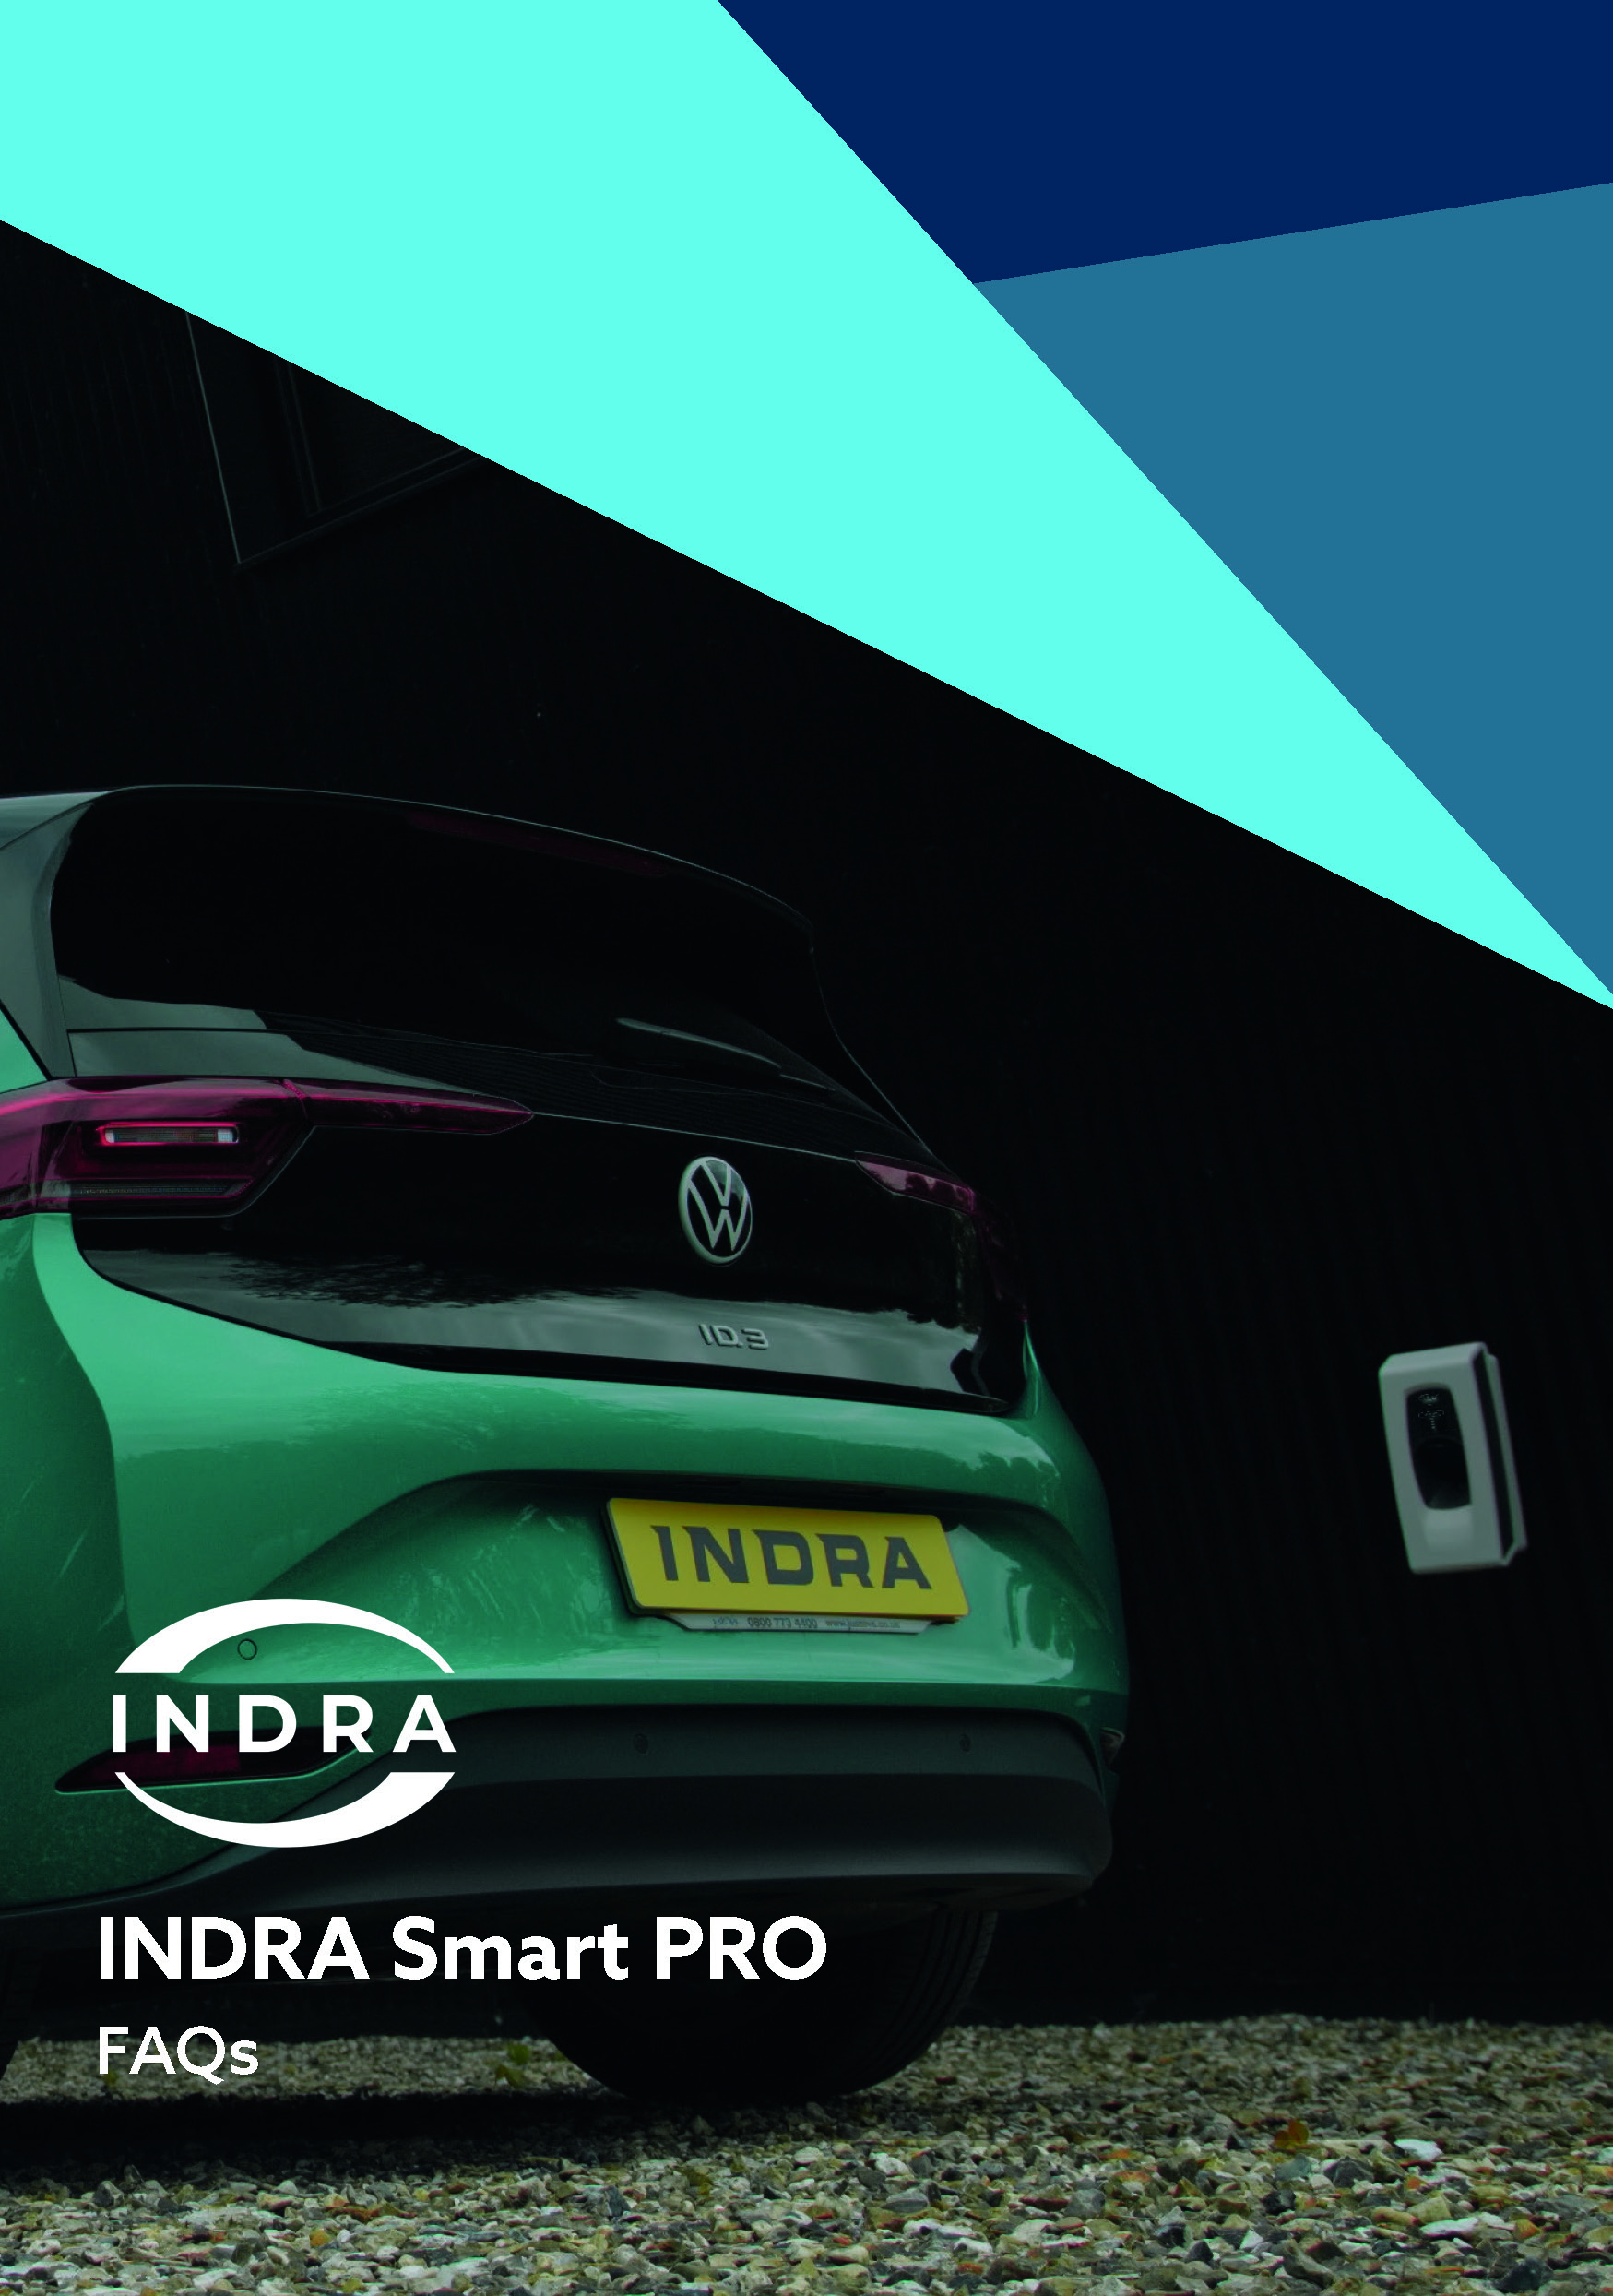 INDRA EV Charger- Smart Pro FAQs